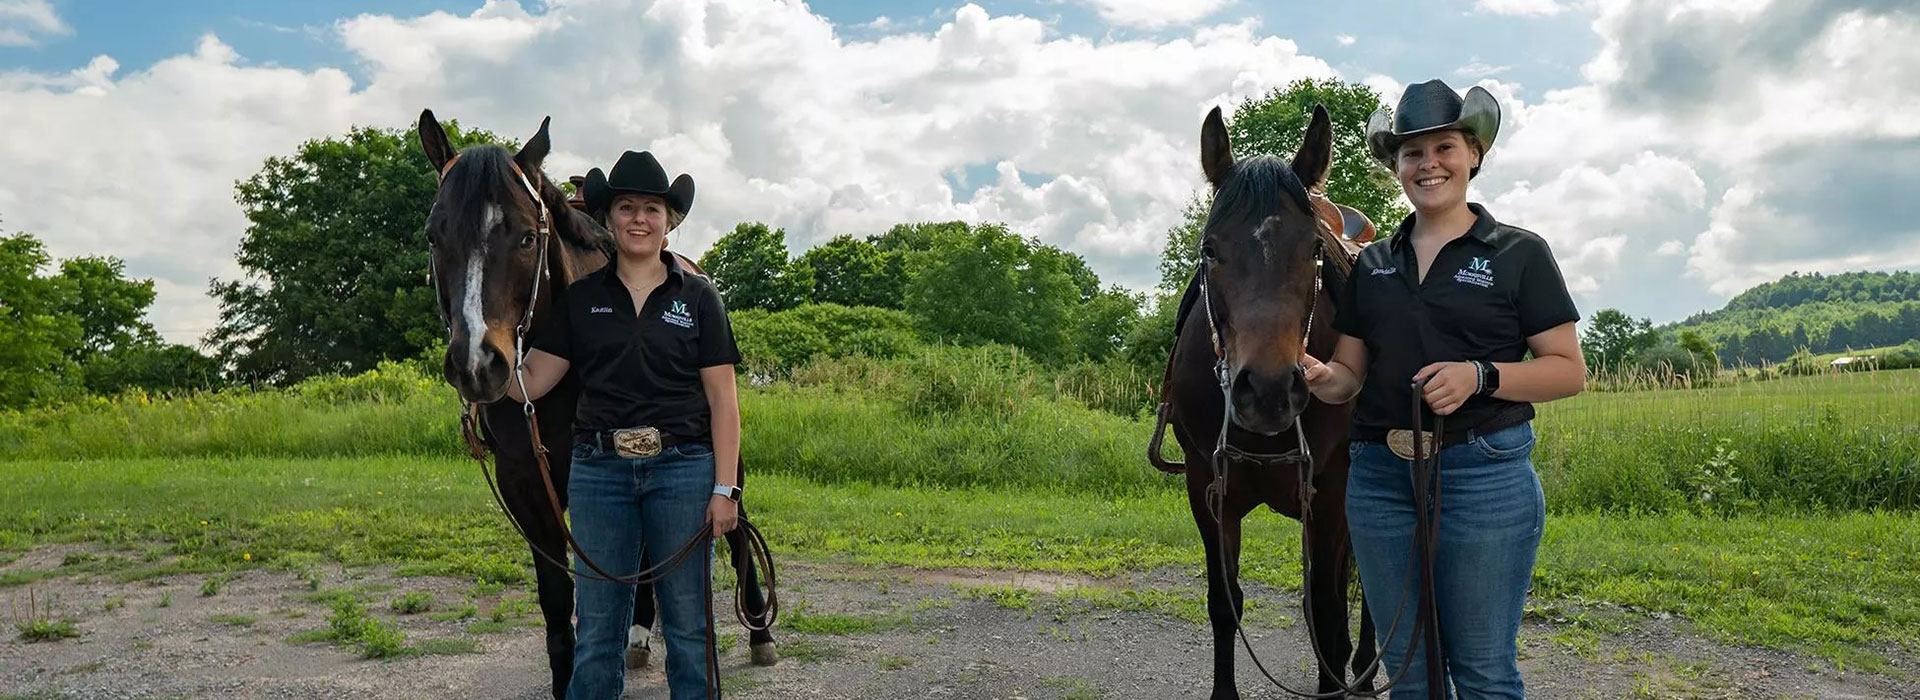 Horses who once relied on classes of students for their care, learned to rely on unheralded equine students and dedicated faculty and staff to keep them going during the COVID-19 quarantine, including Kaitlin Renschen, left, with Donald, and Kendalle Booth with Wilma.